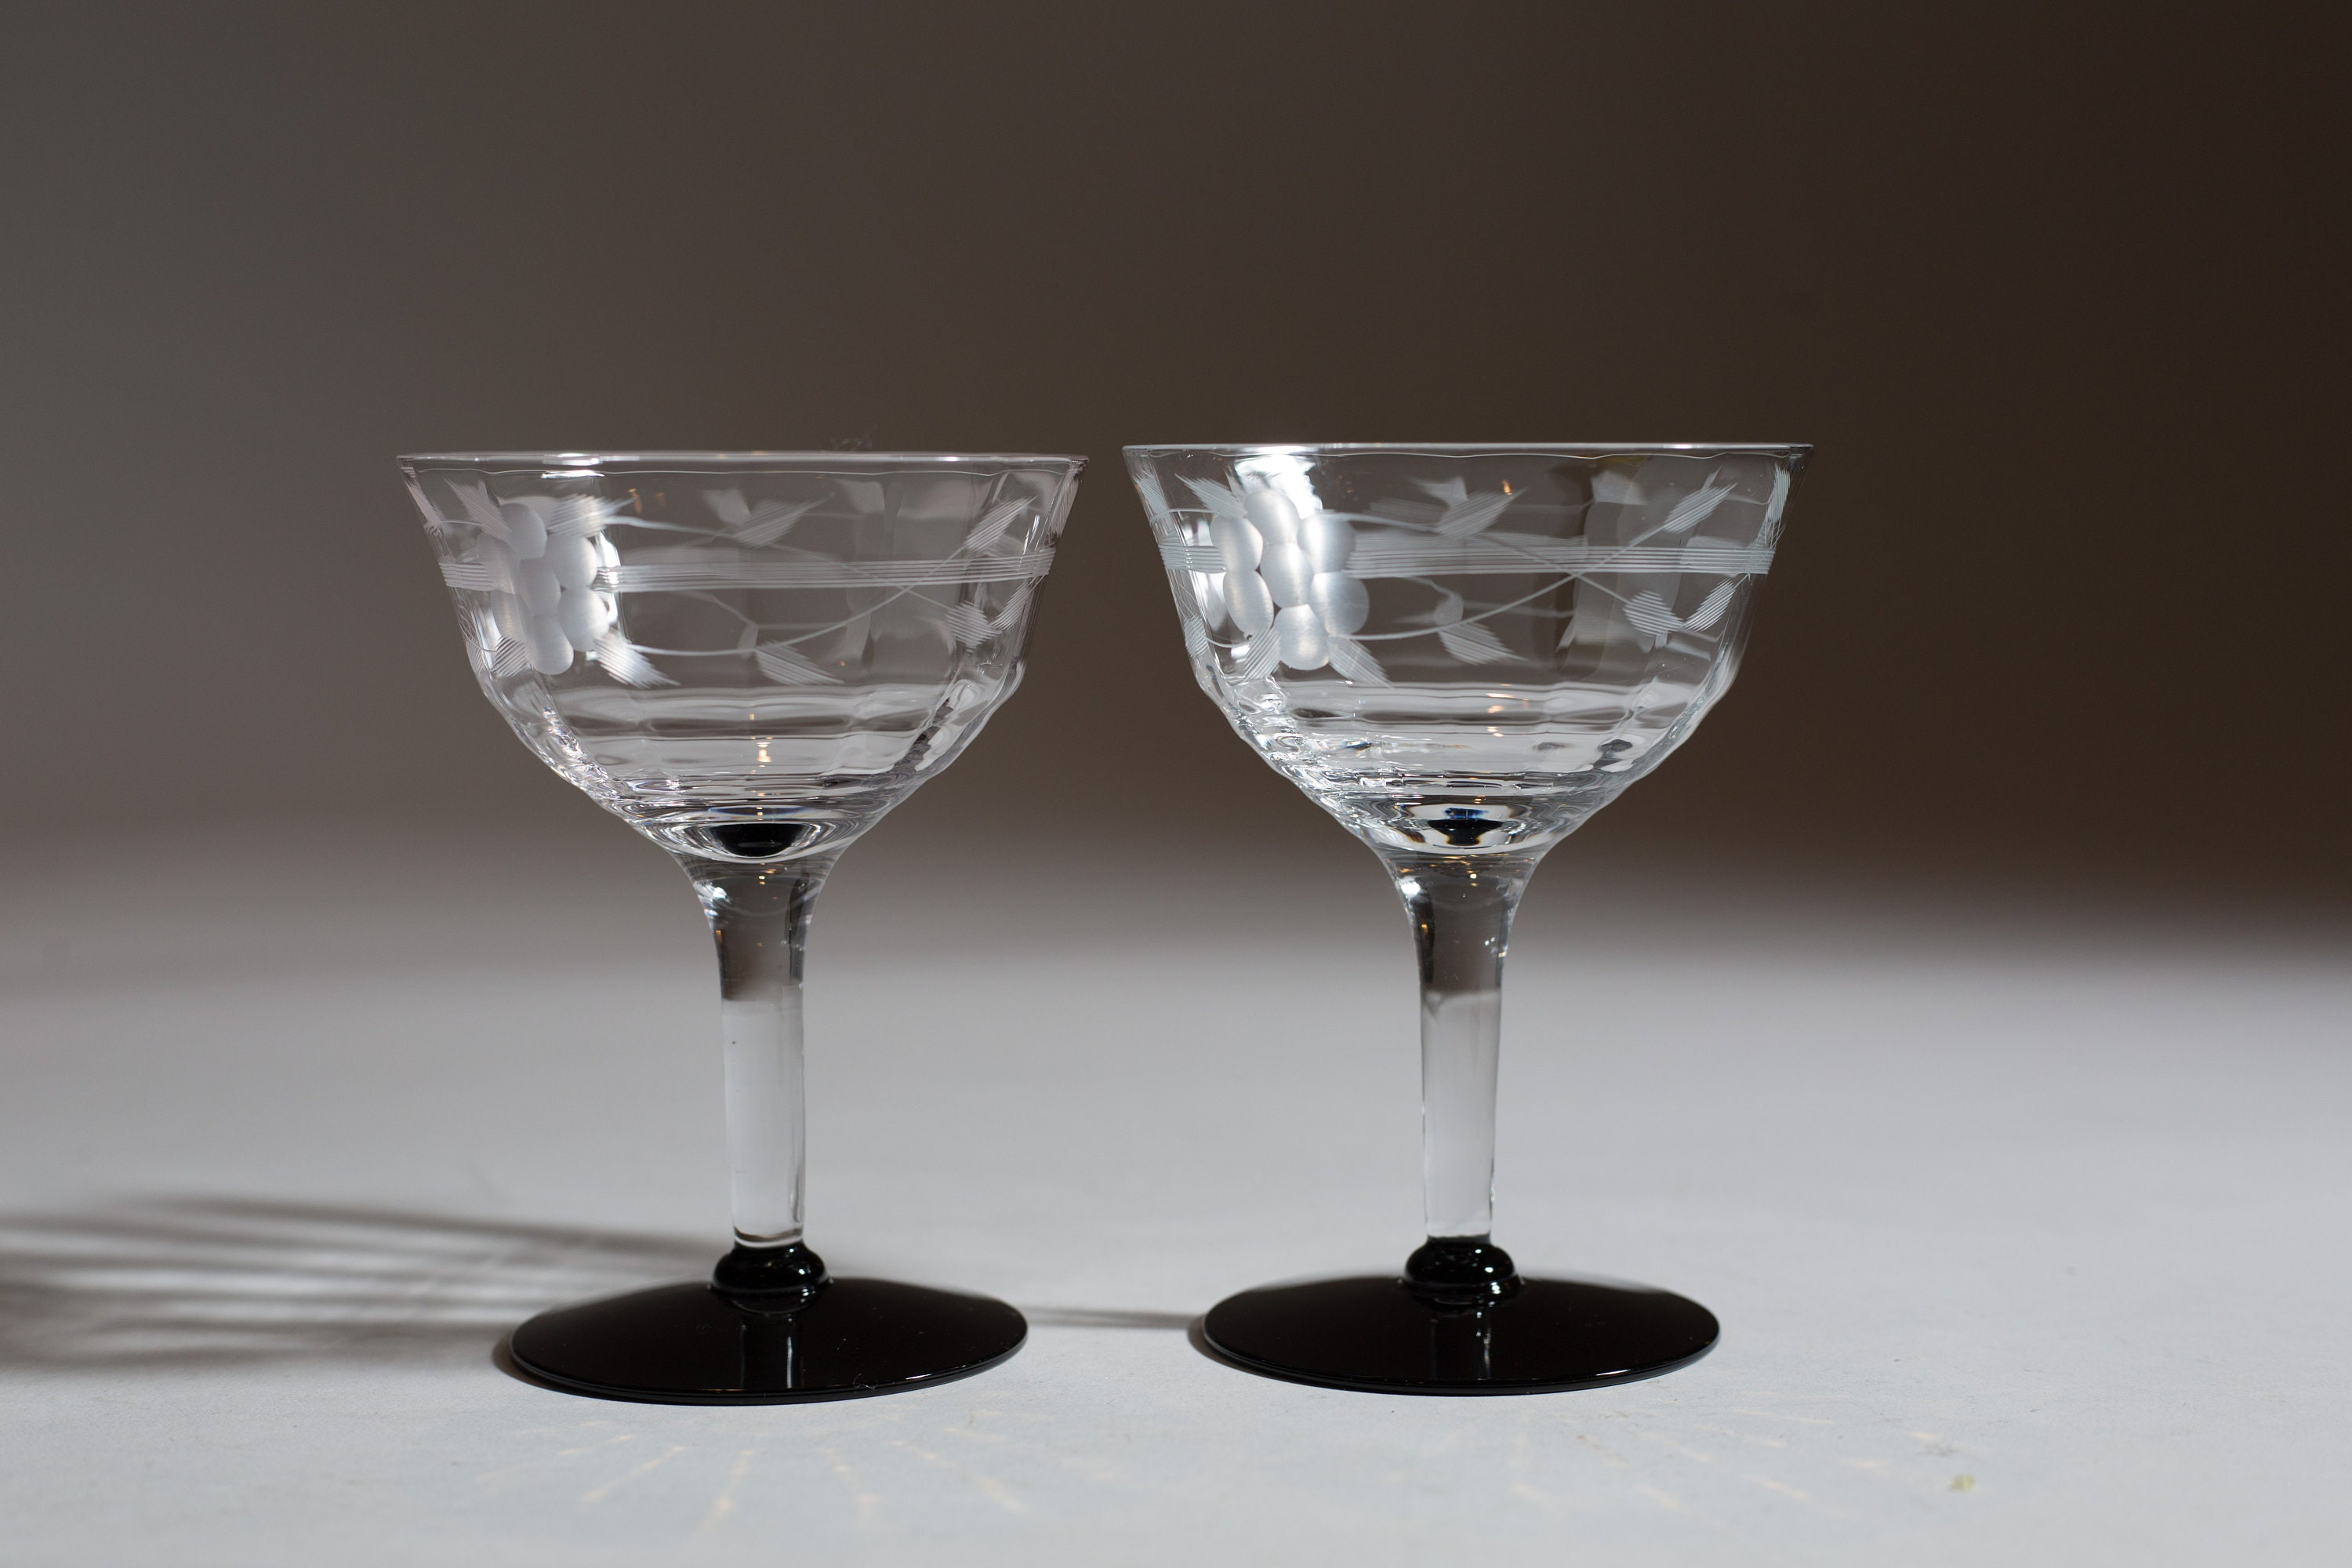 2 Vintage Champagne Coupe Glasses With Black Bases Etched Pattern Glasses Mid Century Modern Cocktail Glasses With Ornate Pattern